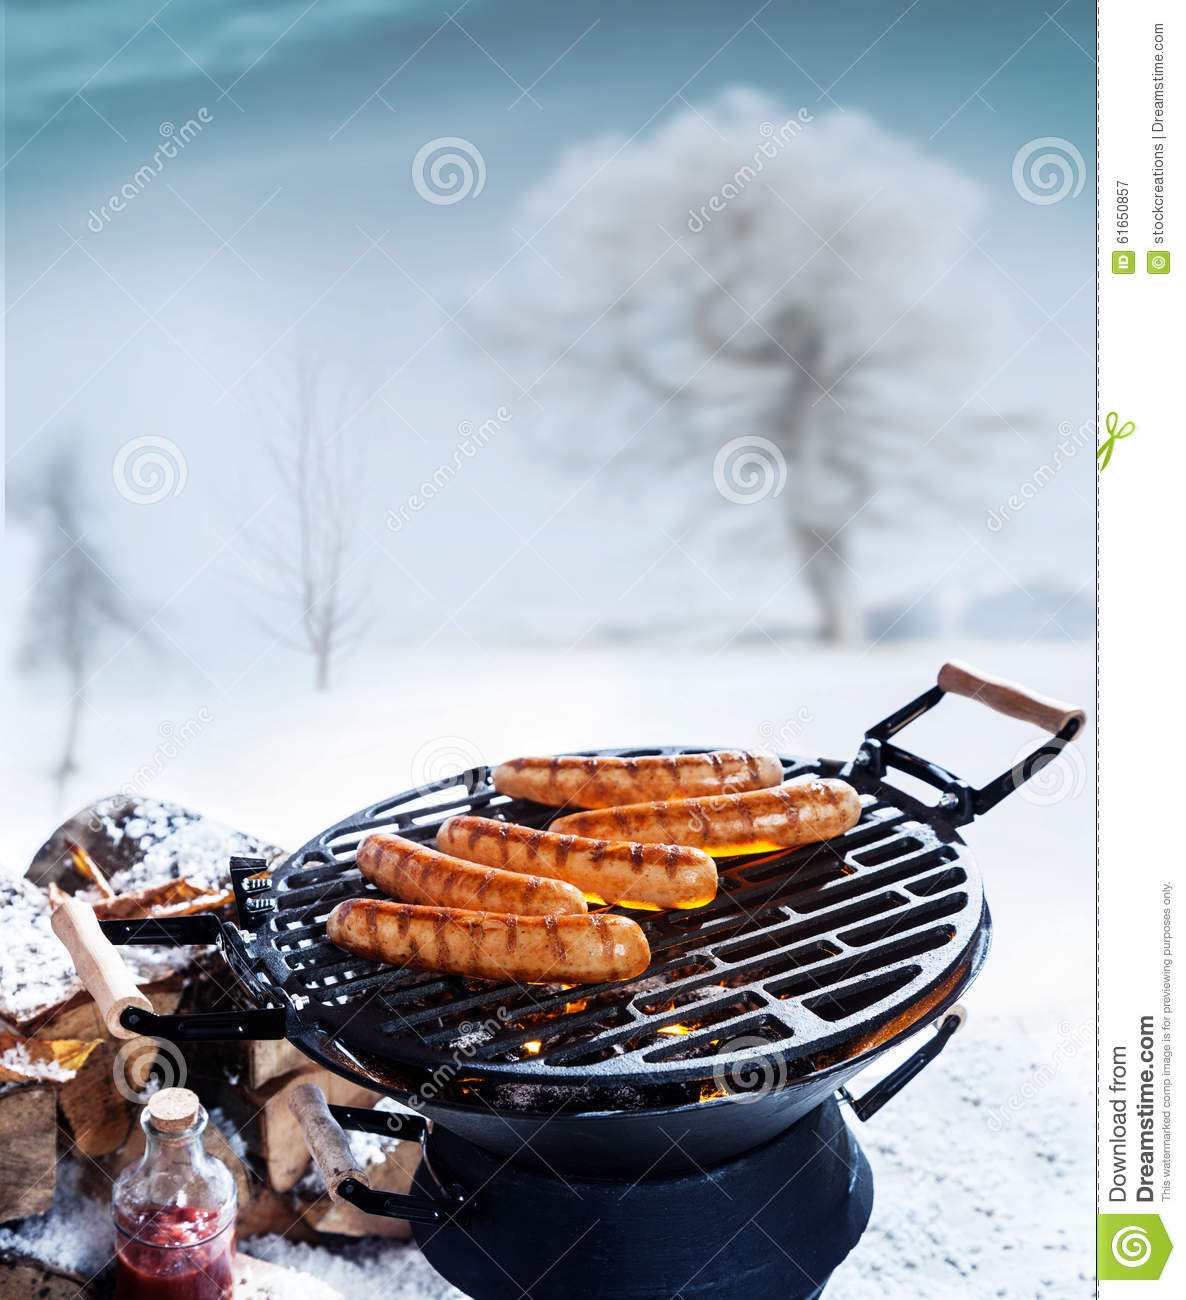 winter grill or barbecue stock image image of meat fire 61650857. Black Bedroom Furniture Sets. Home Design Ideas